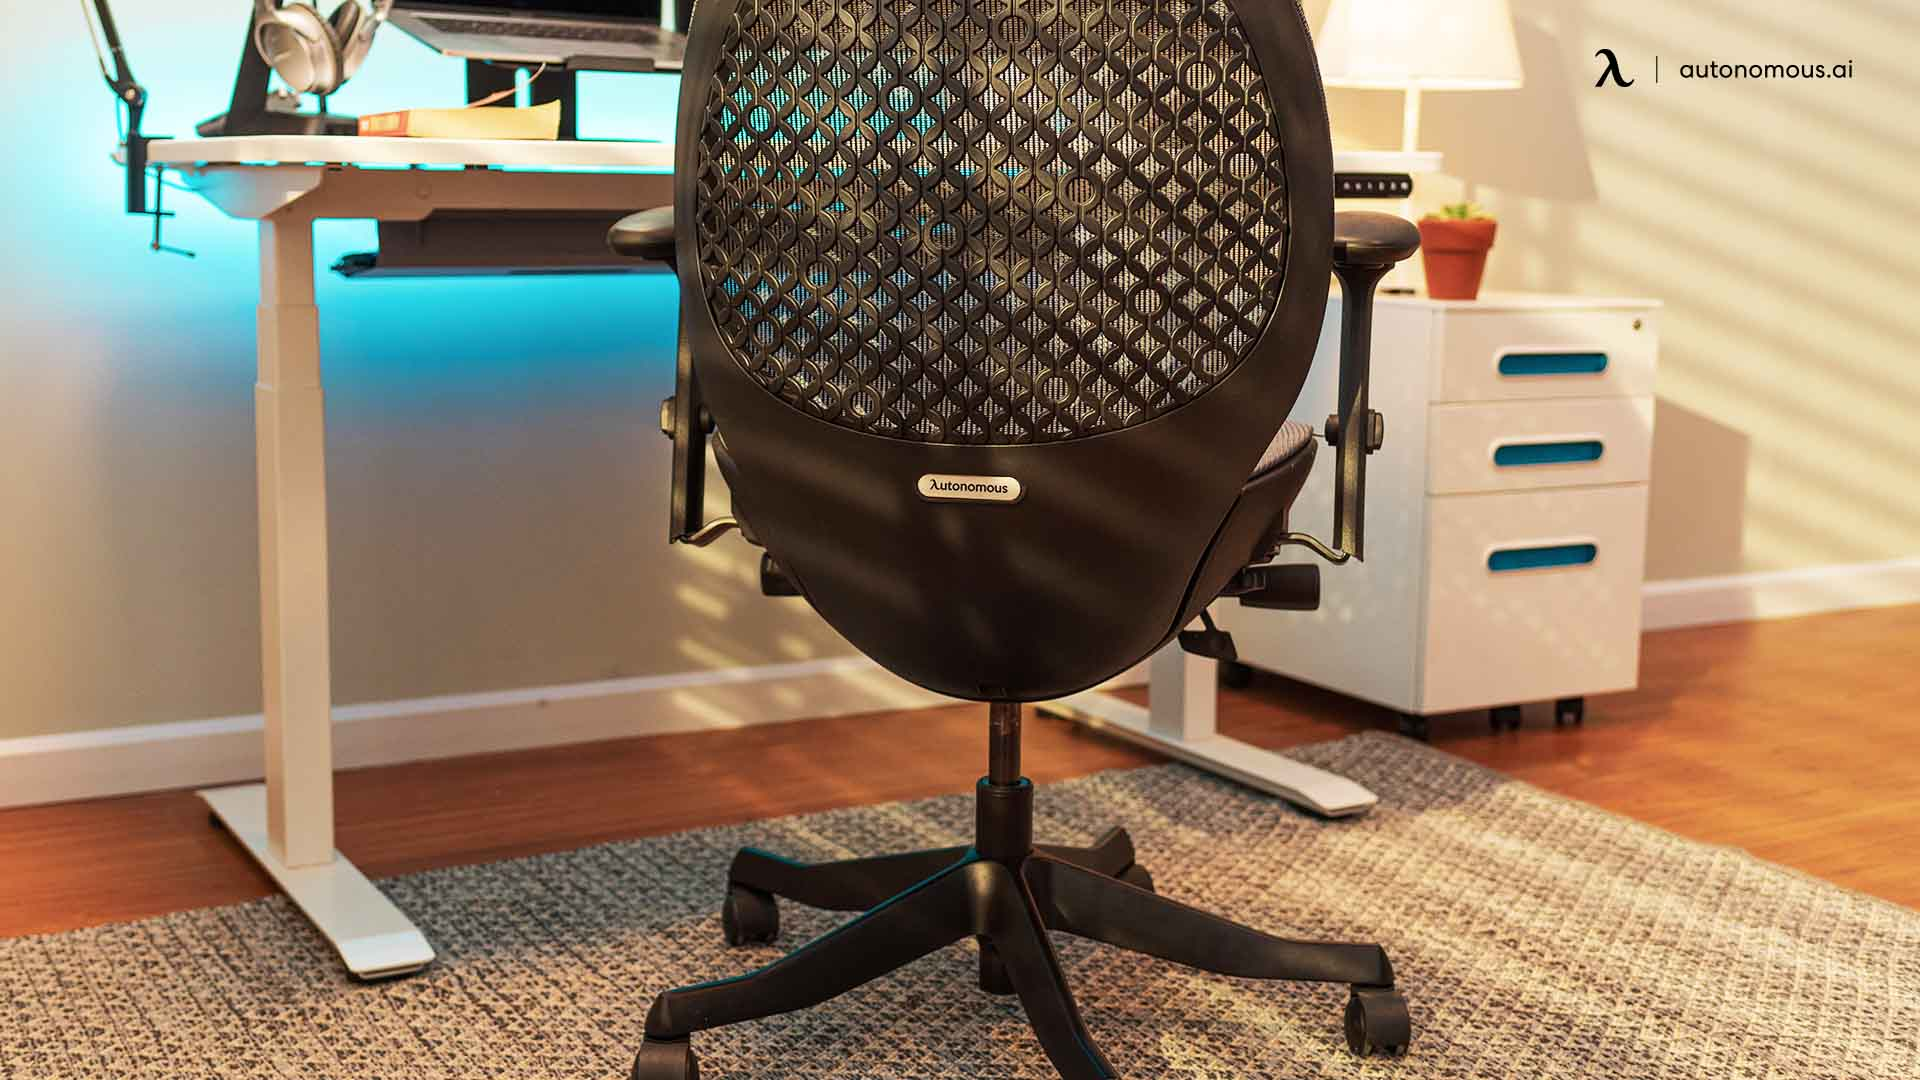 The Brand Name of the Office Chair